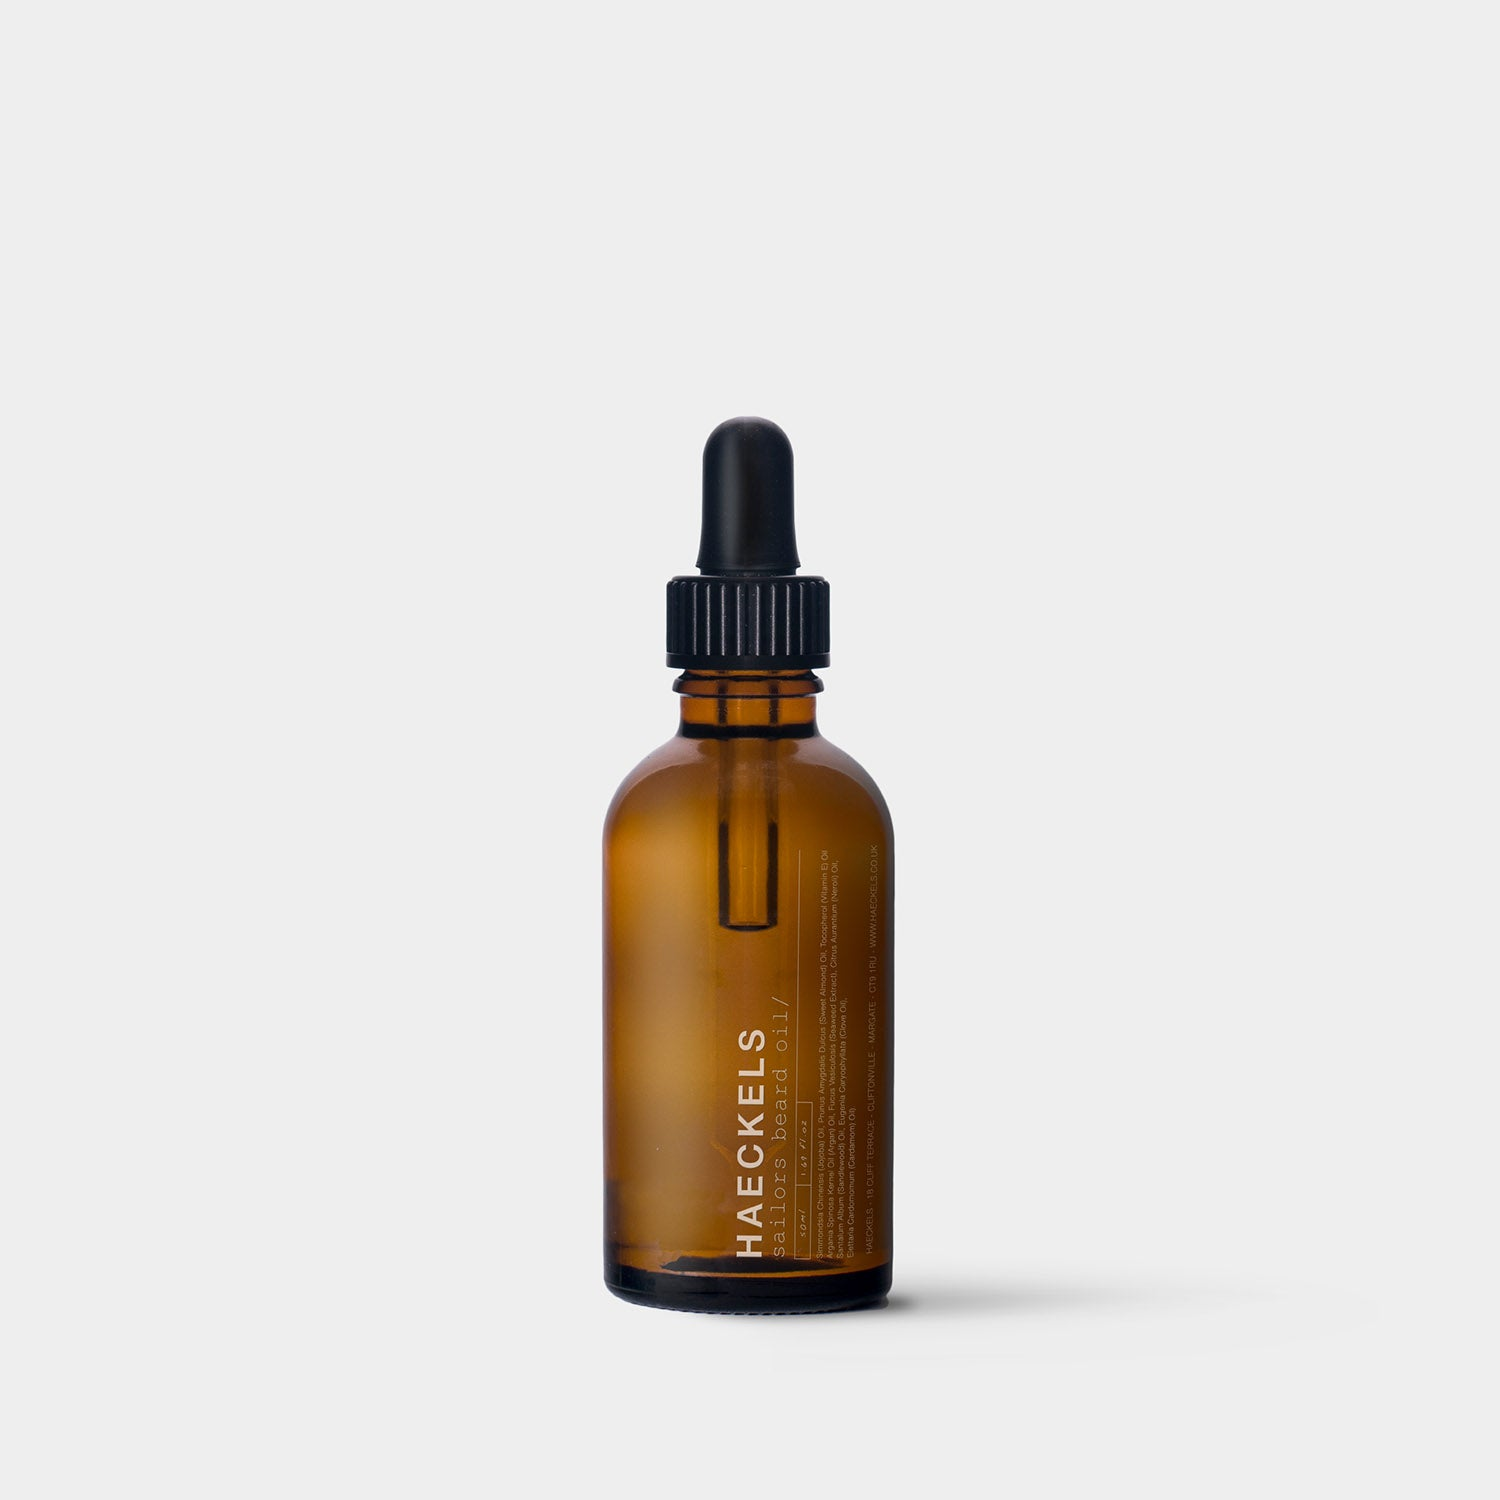 Haeckels Hydrating Beard Oil